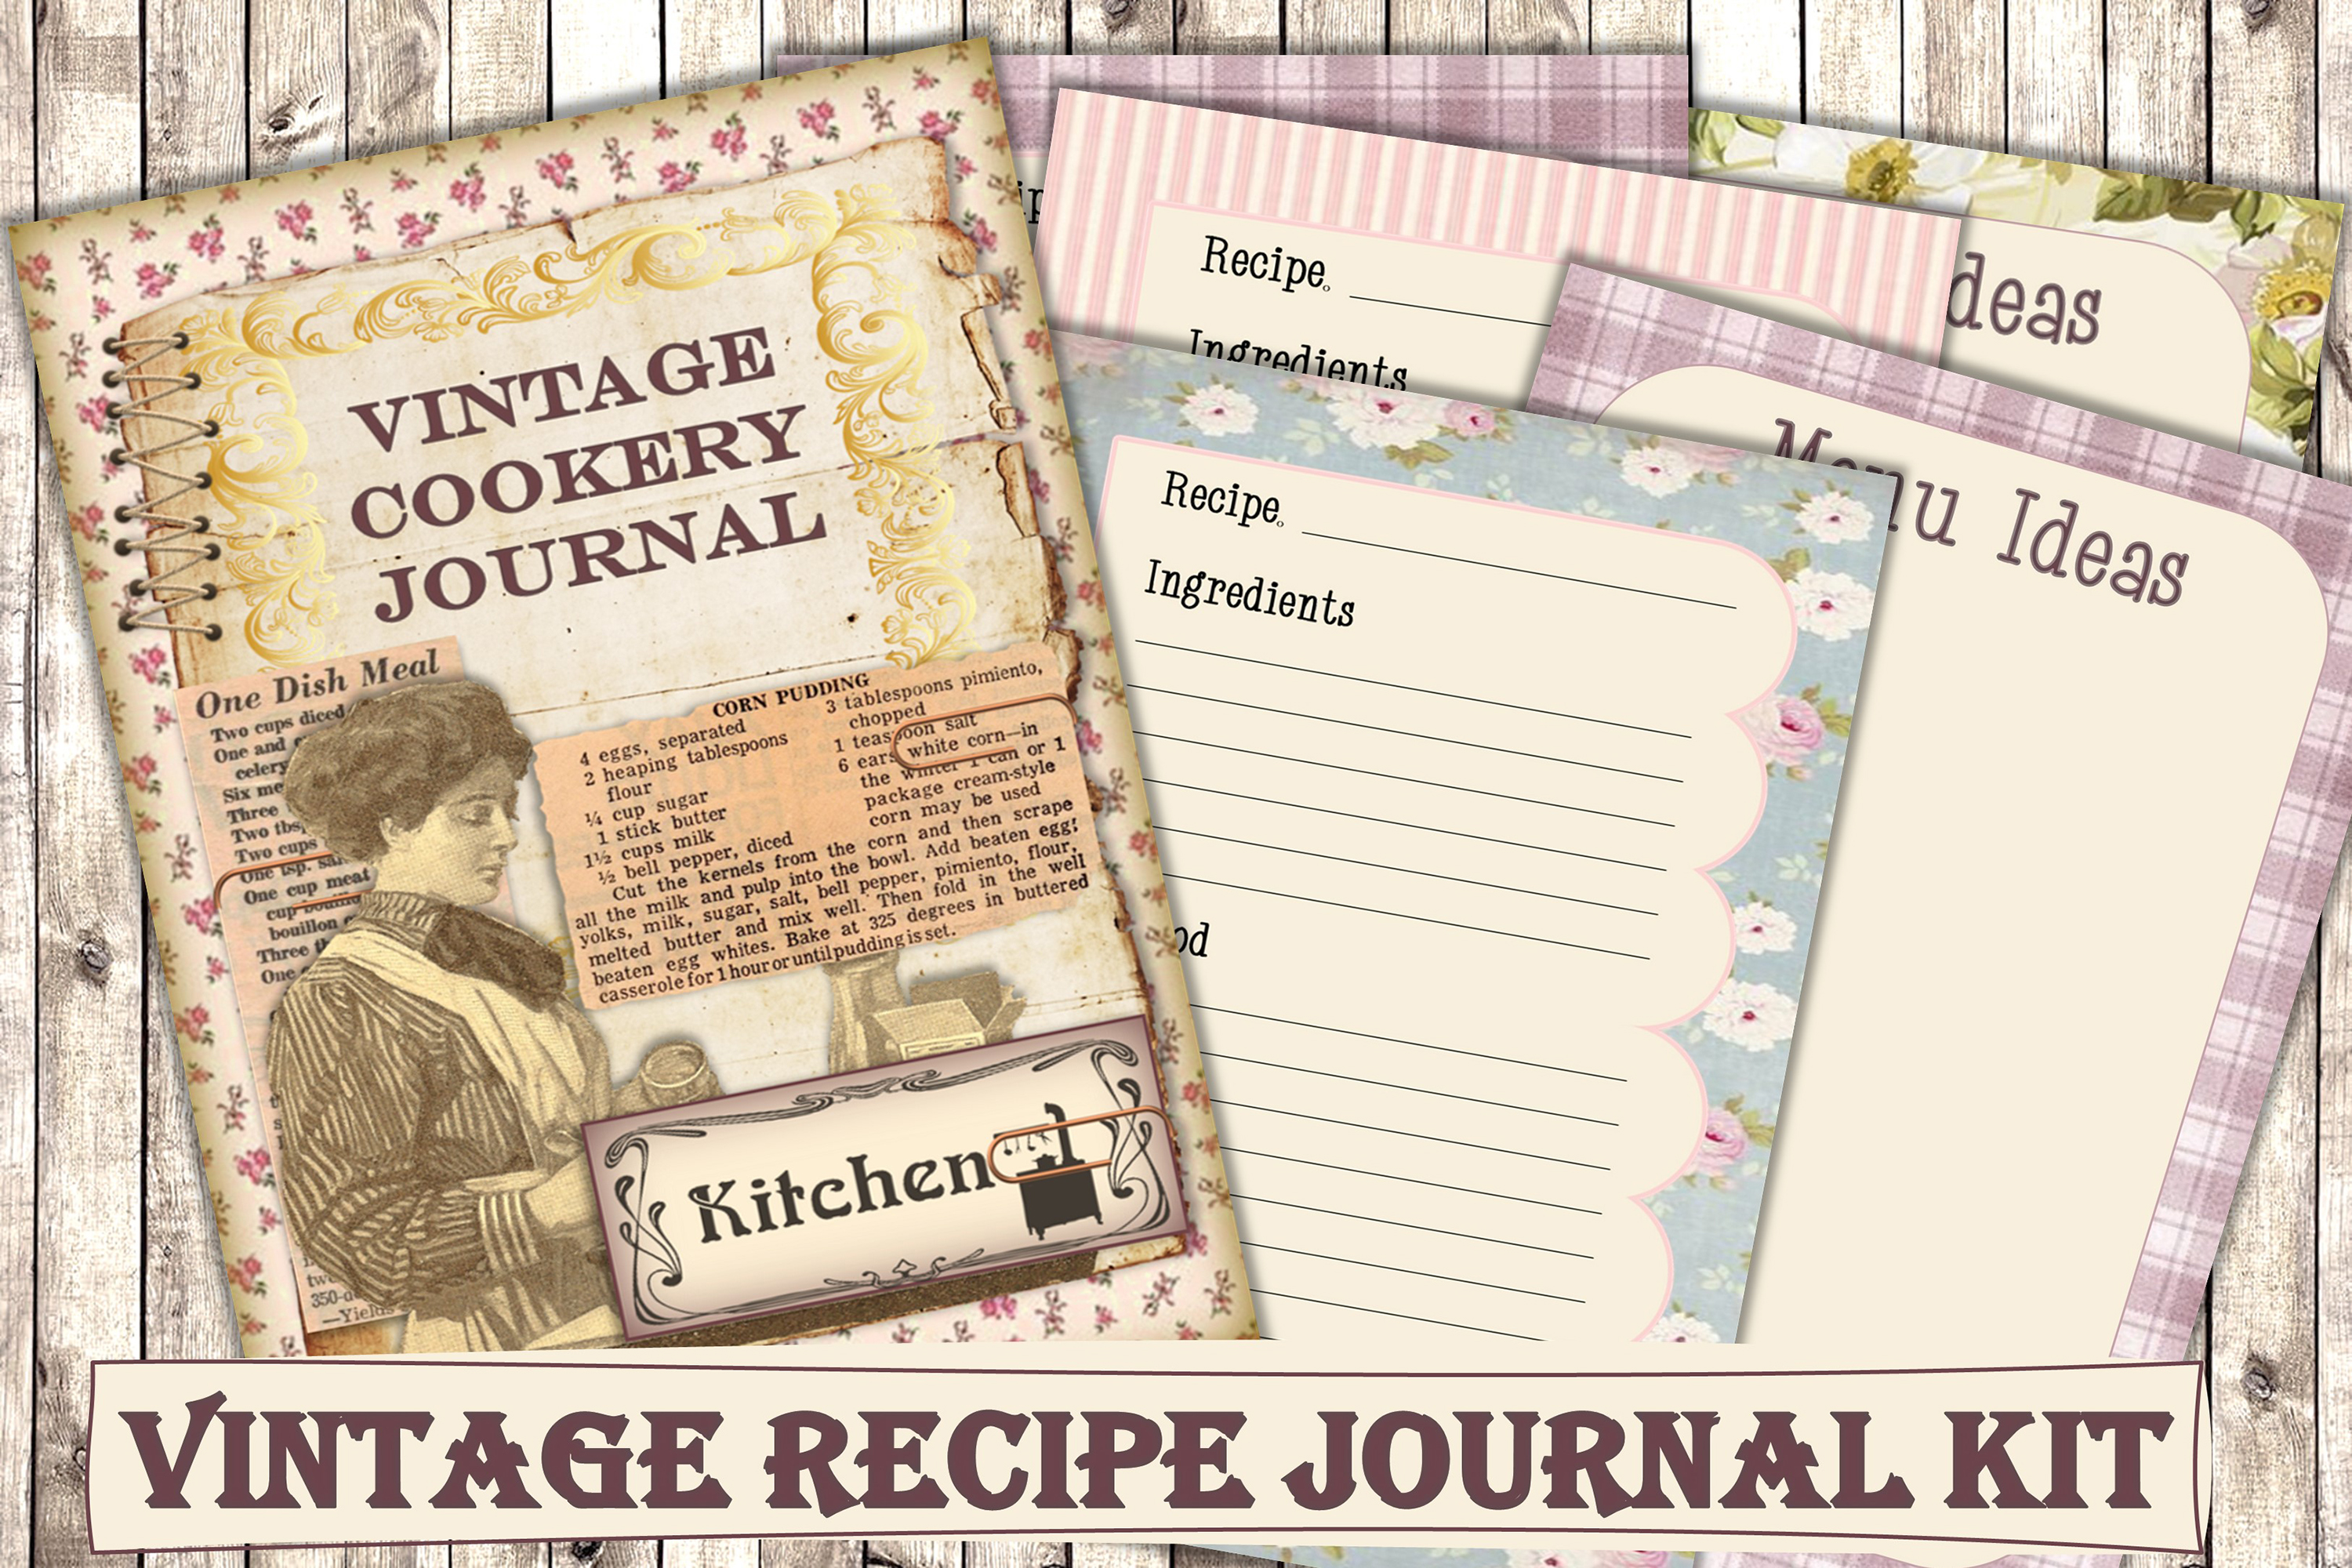 Printable Cookery Recipes Journal Kit SVG File